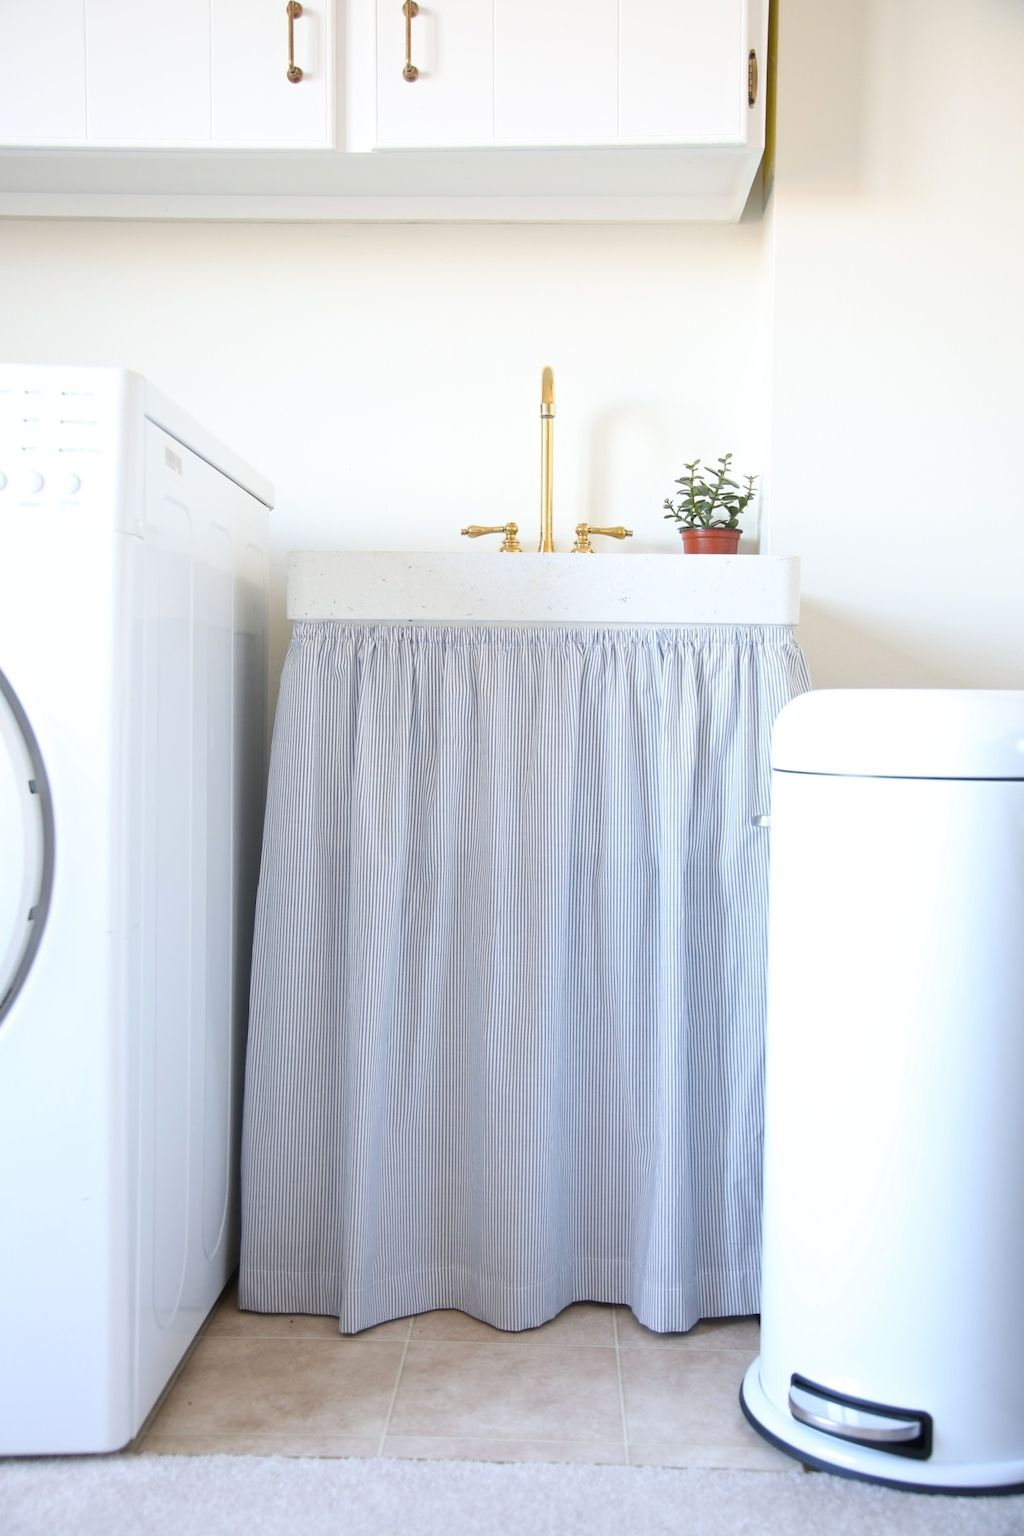 Transform Dated Into Beautiful Without A Lot Of Expense Or Effort Laundry Room Ideas Laundry Room Decor Laundry Room Sink Laundry Room Makeover